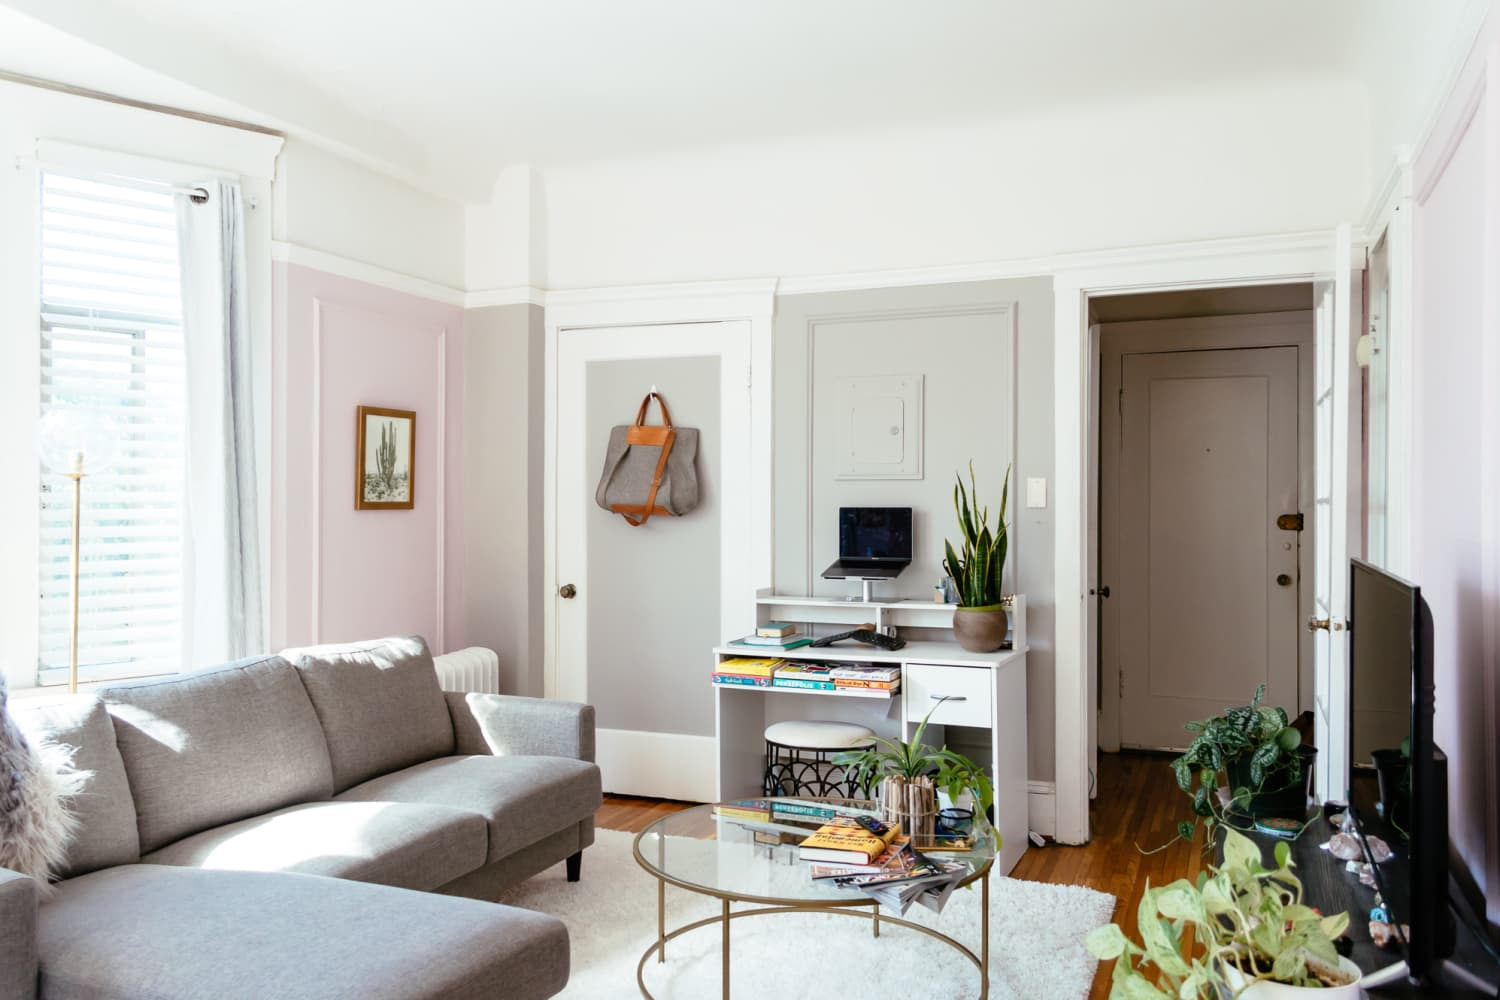 The Coffee Table Style That Makes a Room Feel Bigger, According to Real Estate Pros